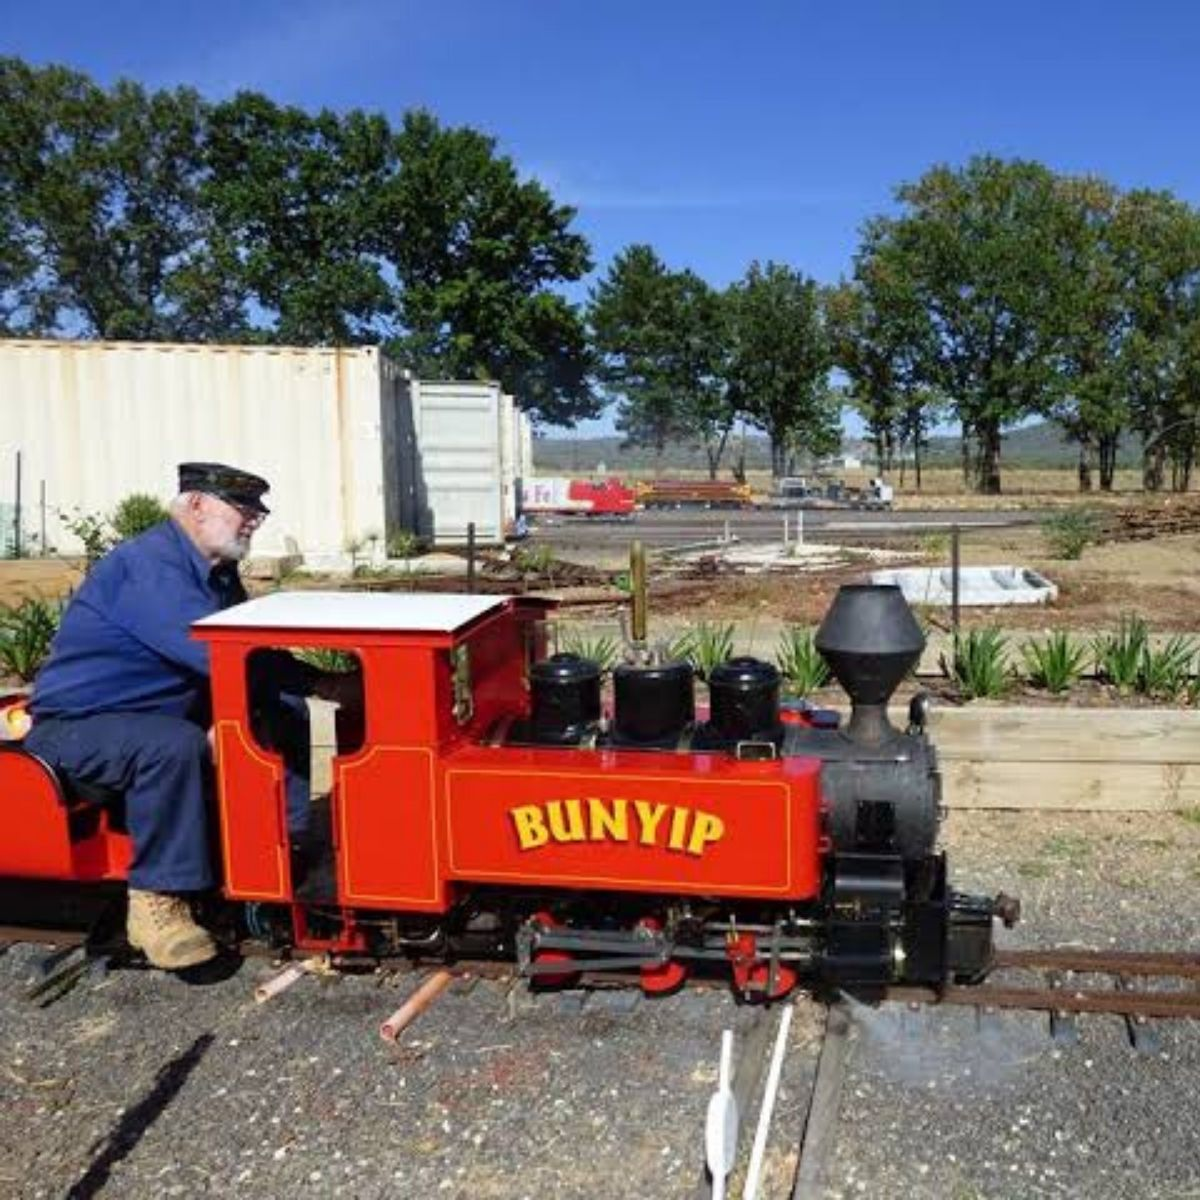 canberra miniature railway train rides attraction canbhol short term holiday accommodation budget hotel family friendly